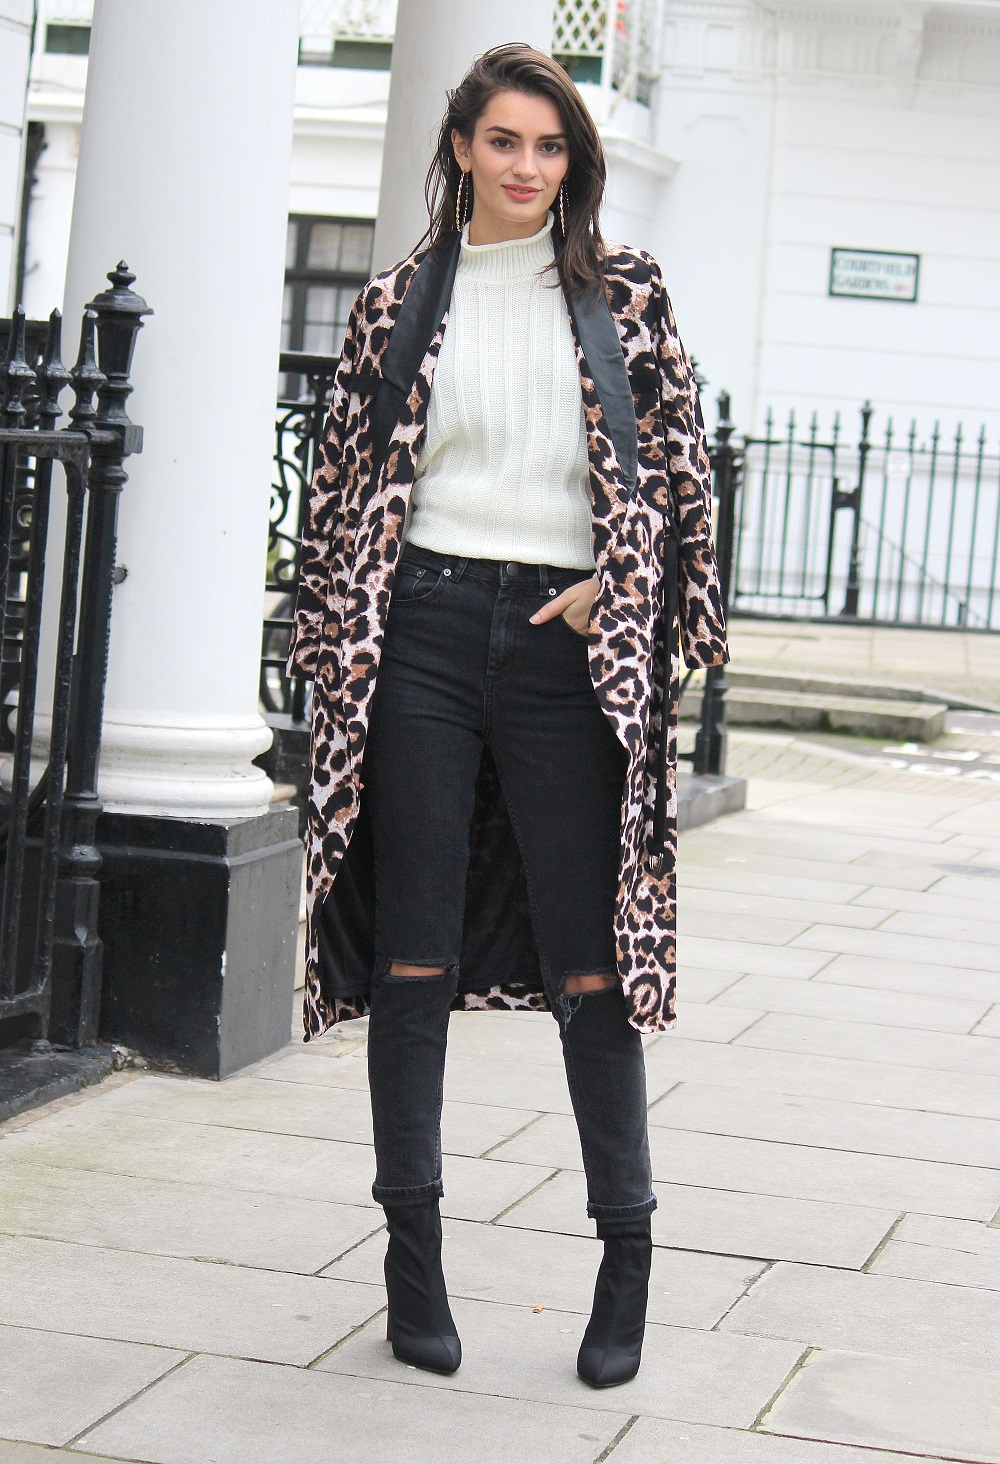 peexo fashion blogger wearing monochrome winter outfit